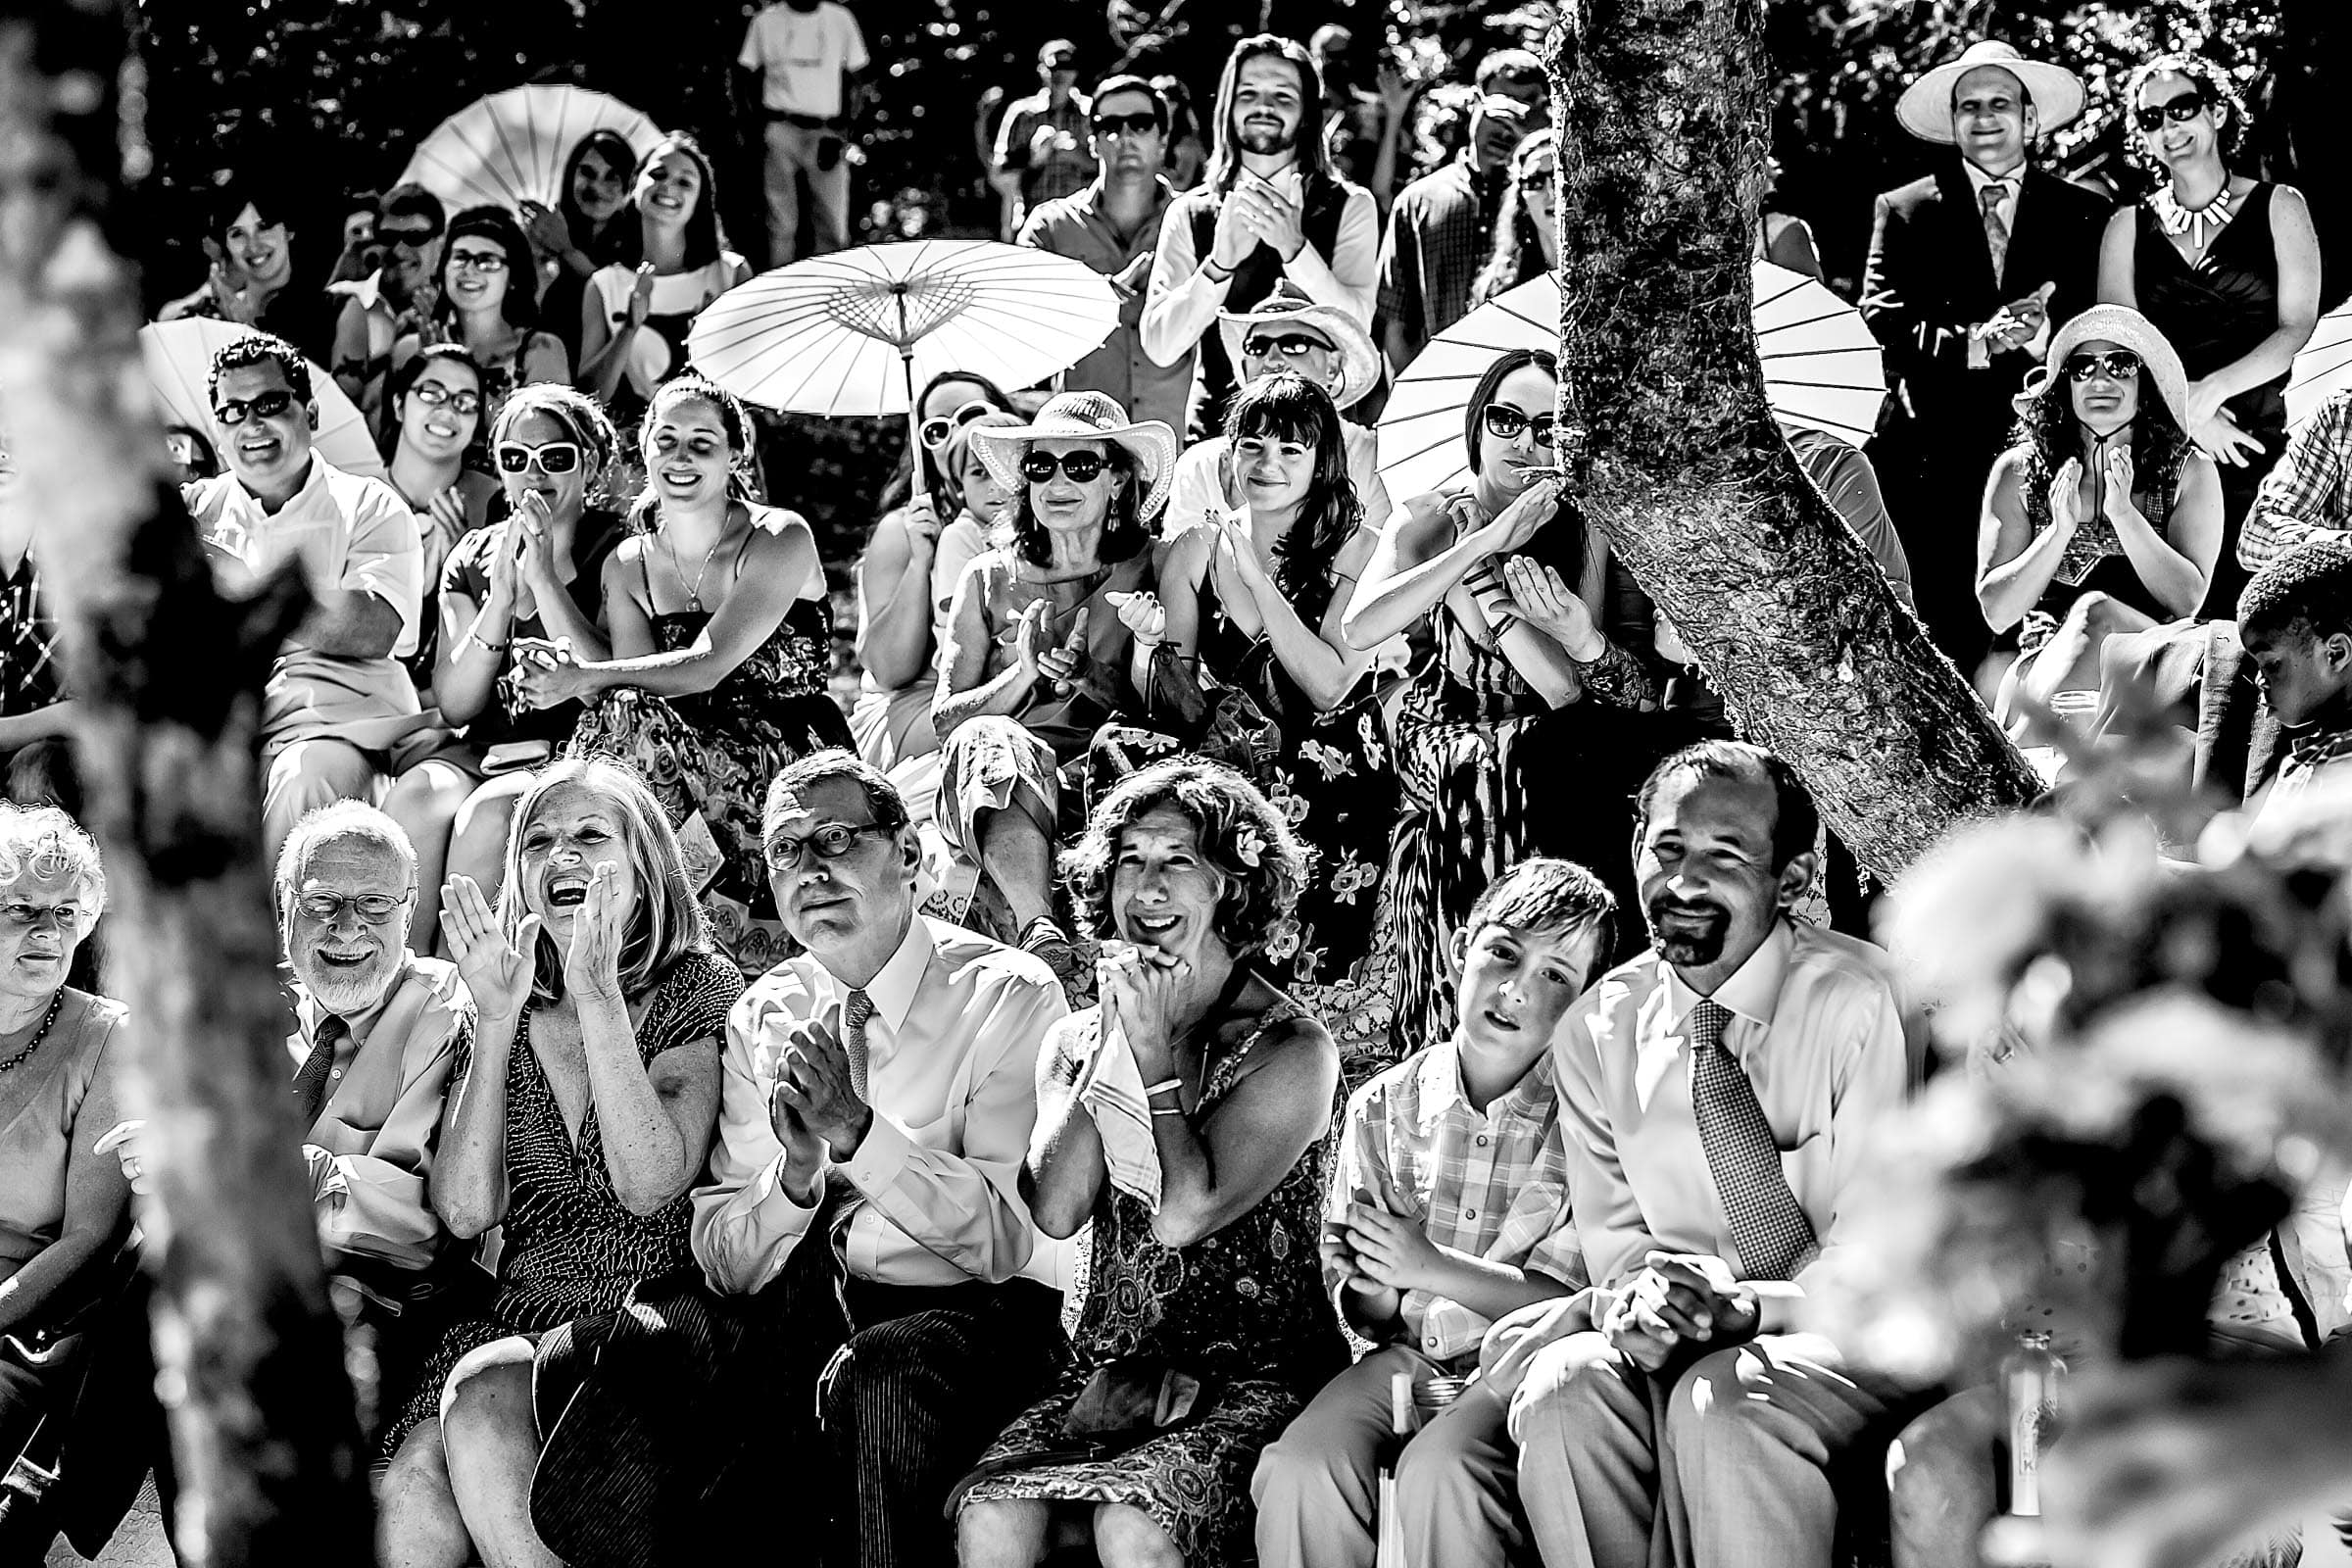 An award winning wedding photo of family and friends reacting to the bride and groom during their Humboldt California wedding ceremony at Beginnings Briceland